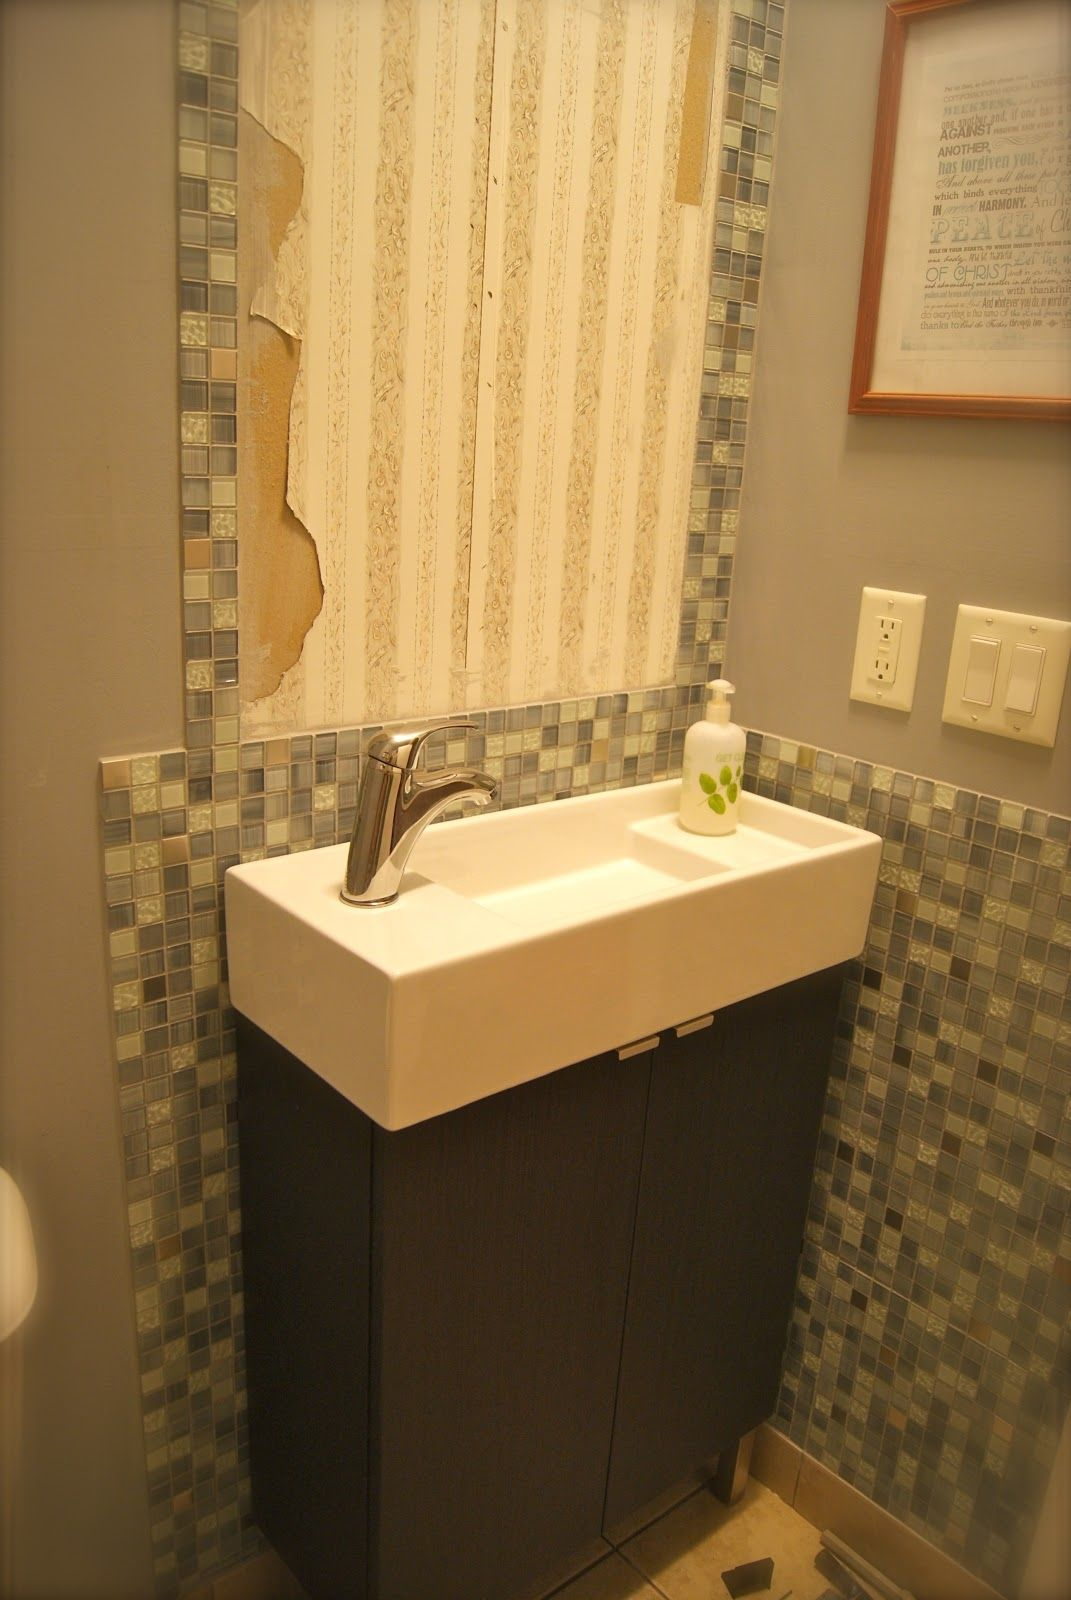 Design Megillah Bathroom Redesign For Under 200: Narrow Rectangular Bathroom Sink